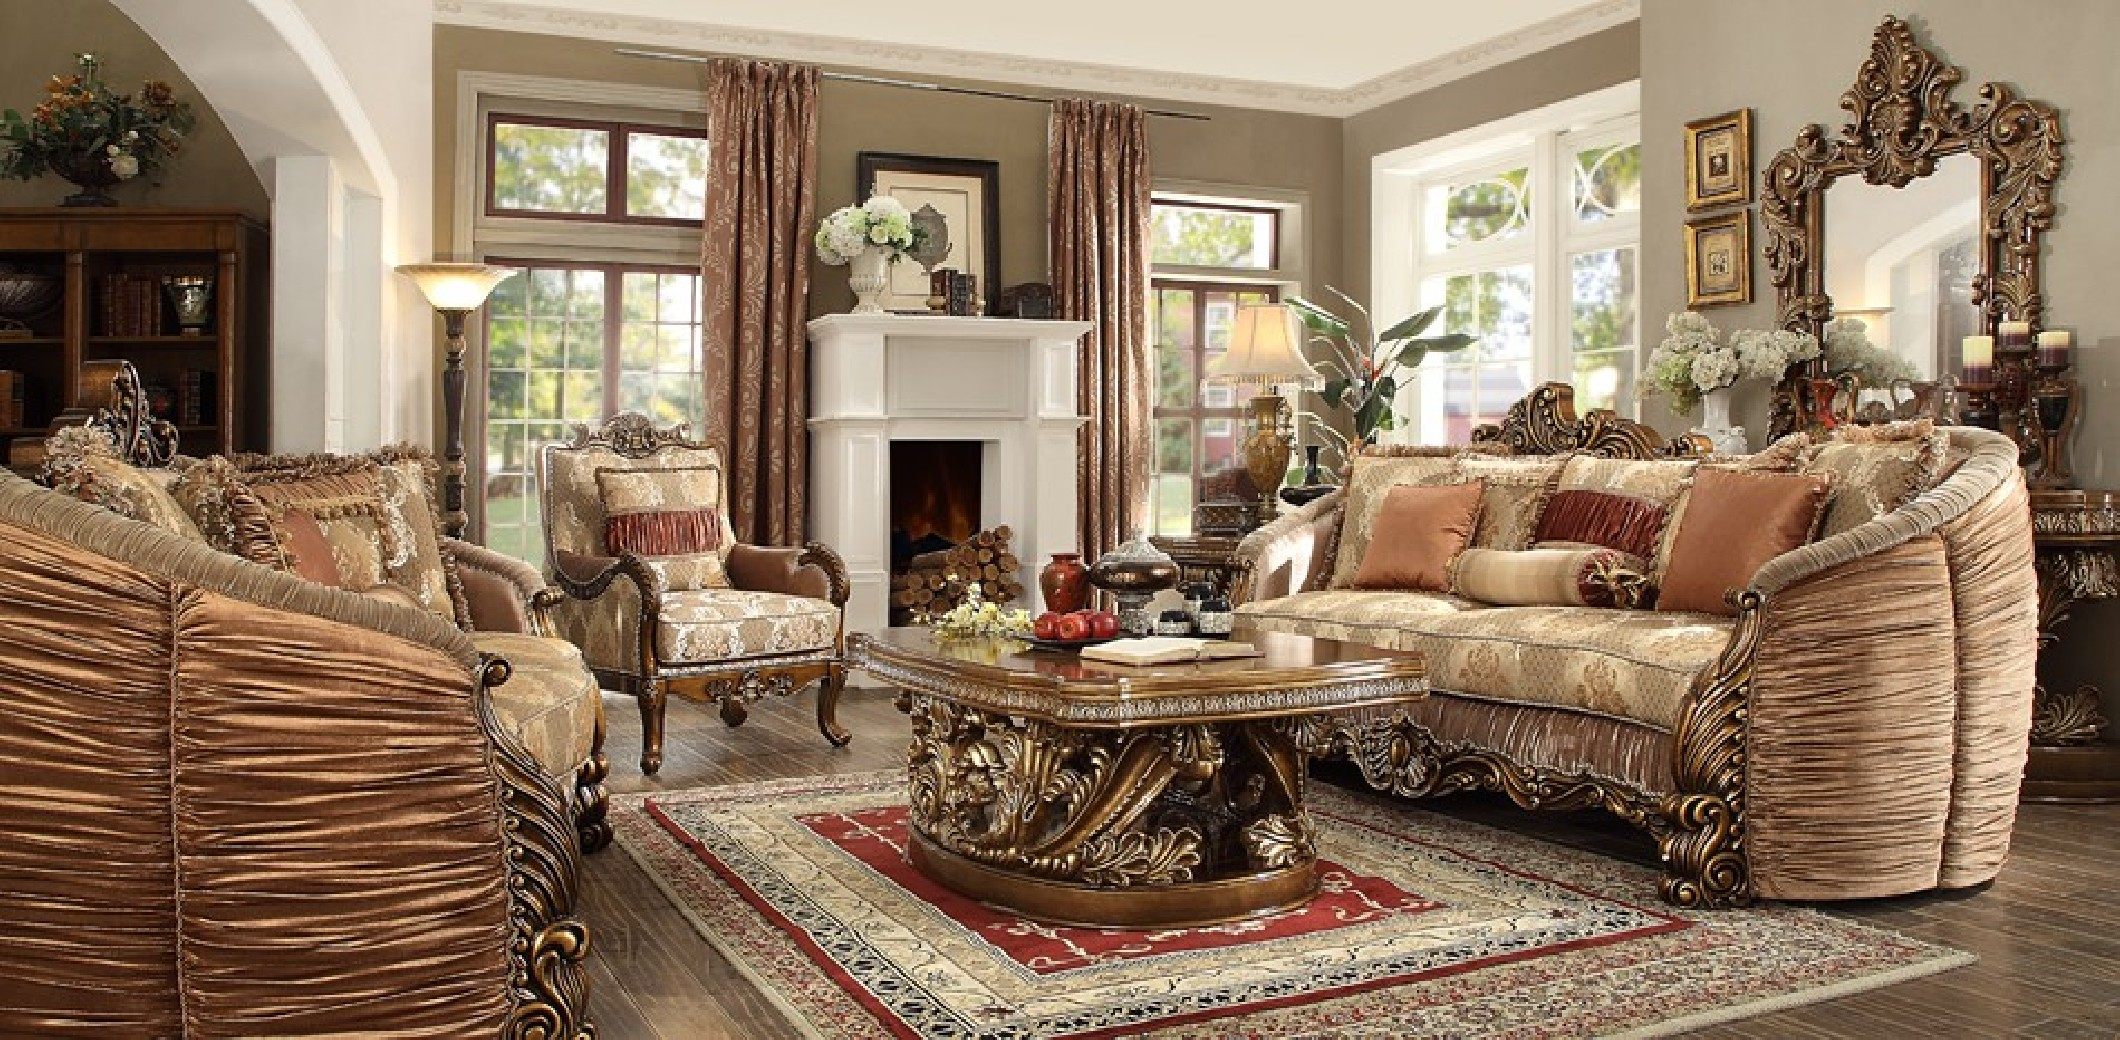 HD 1601 Homey Design Upholstery Living Room Set Victorian